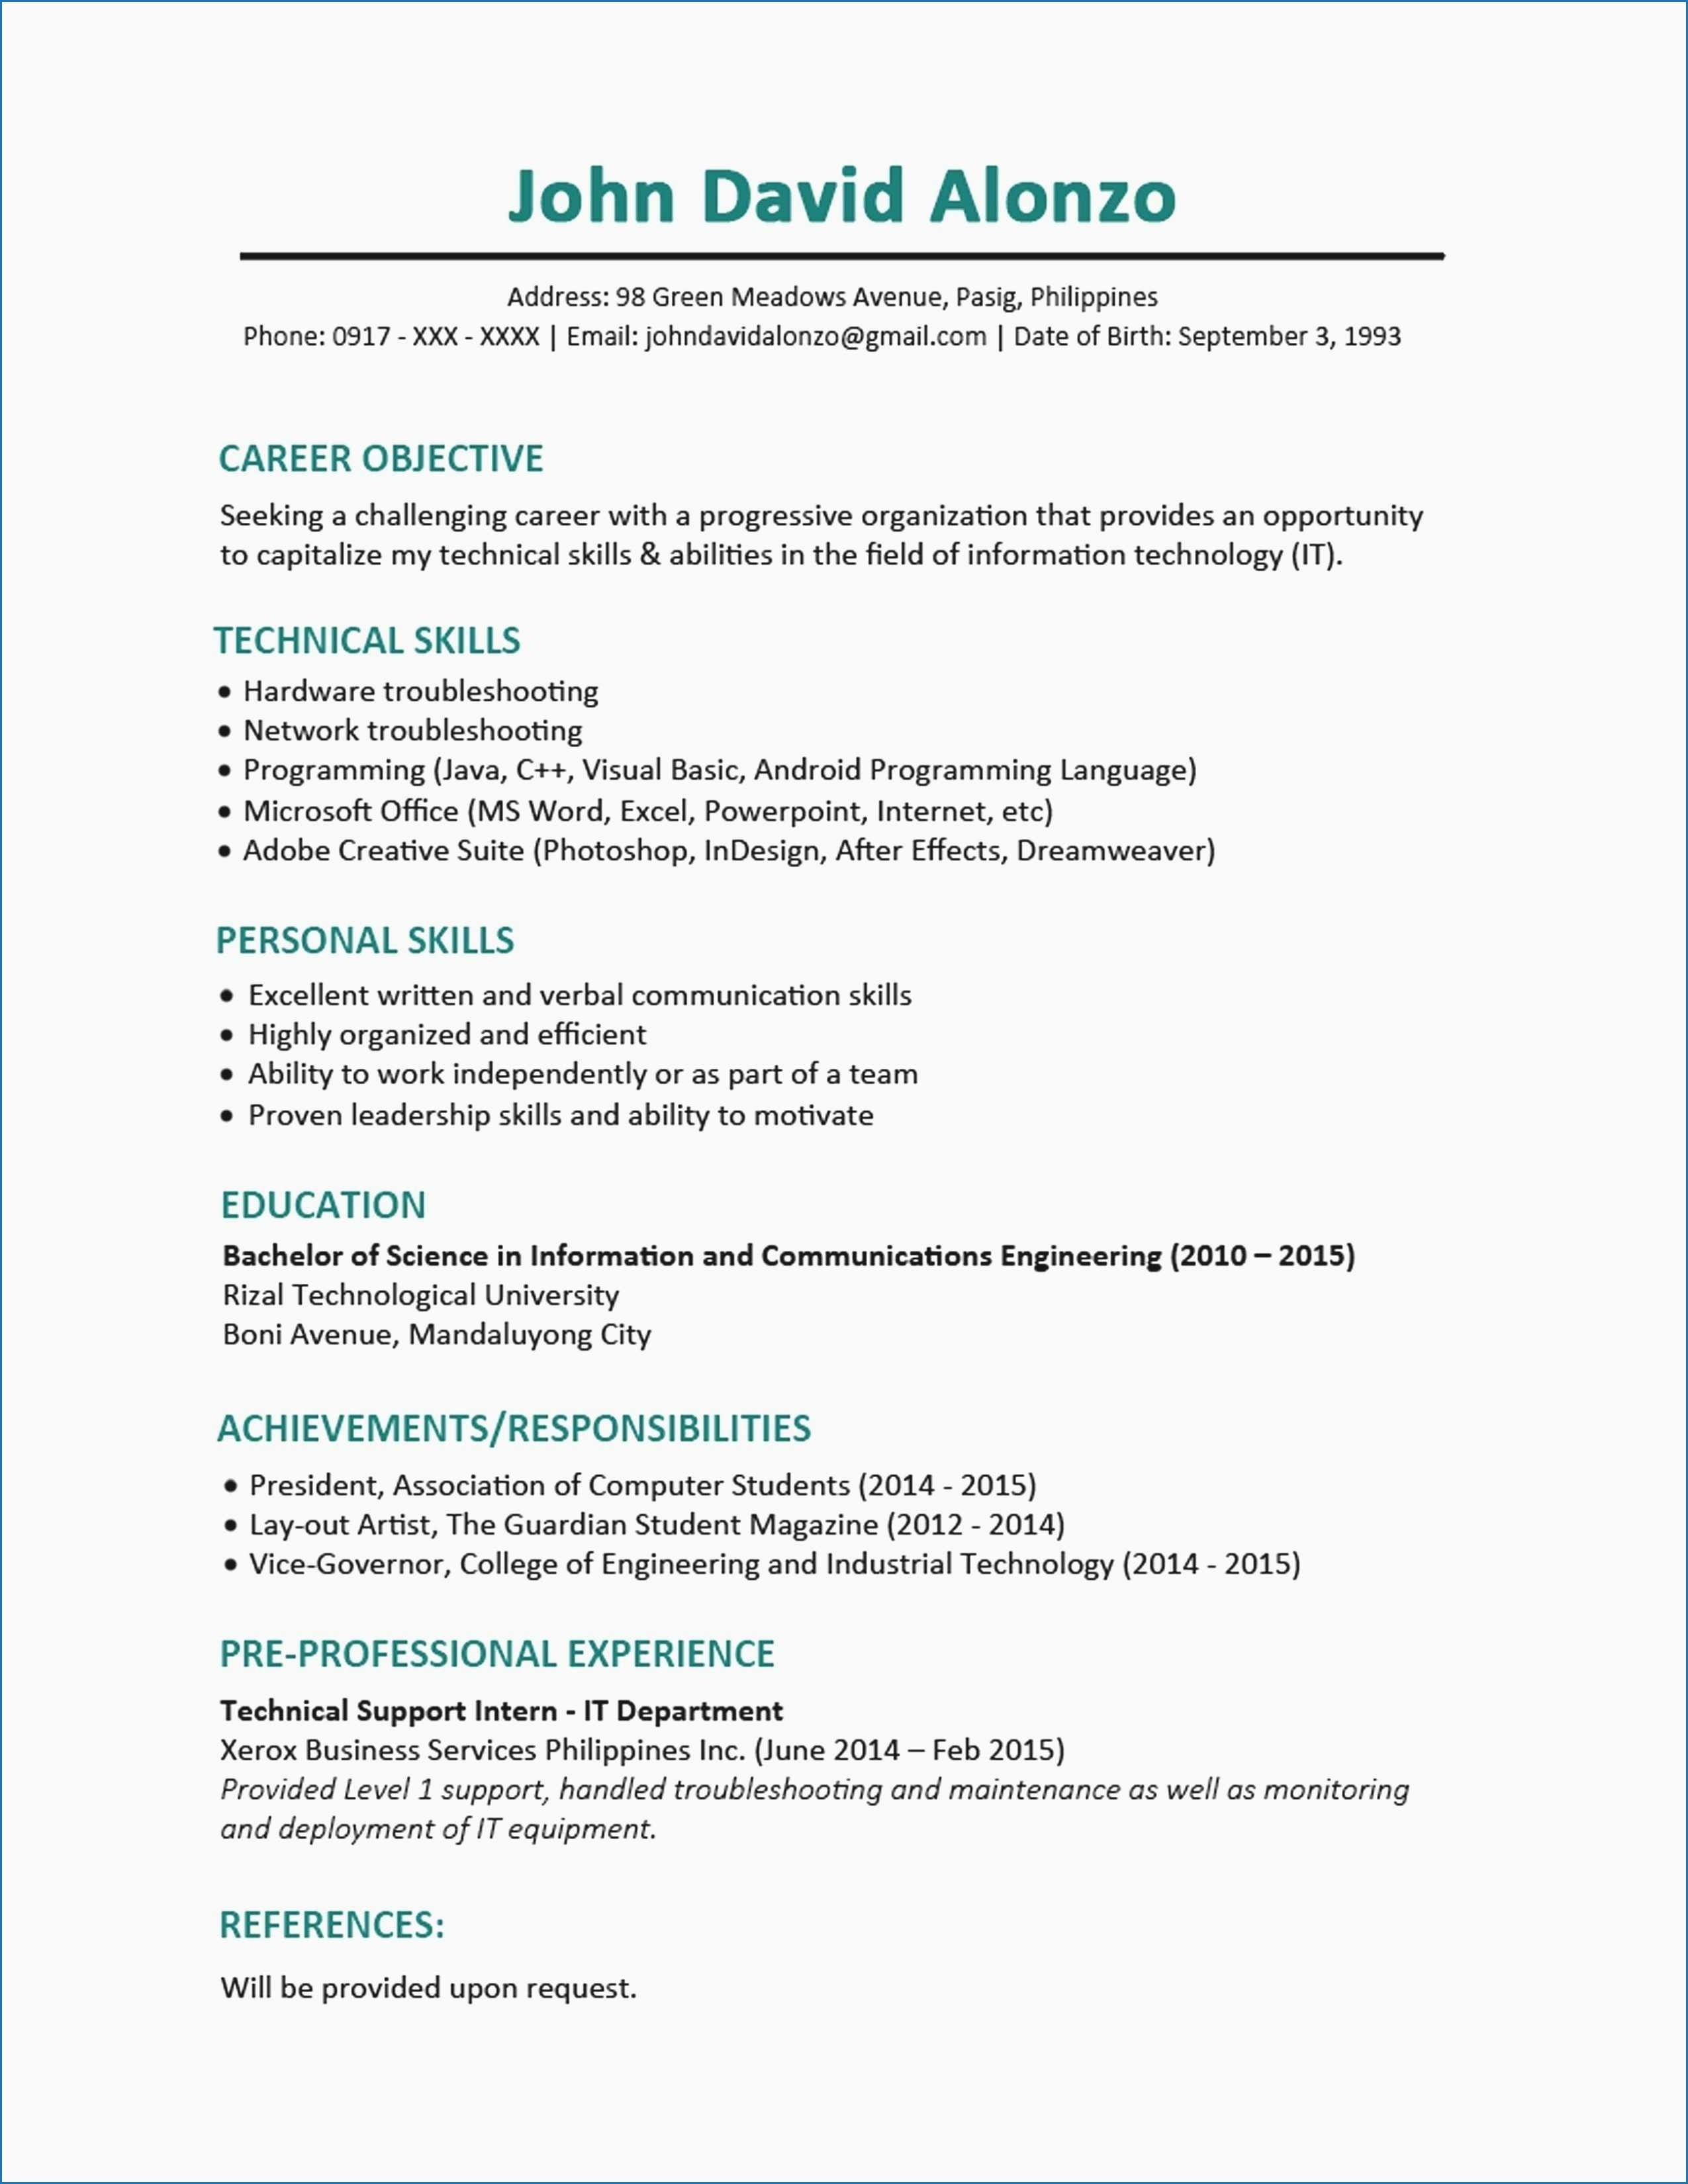 Examples Of A Chronological Resume Collage Work Activity Great Chronological Resume Sample Elegant